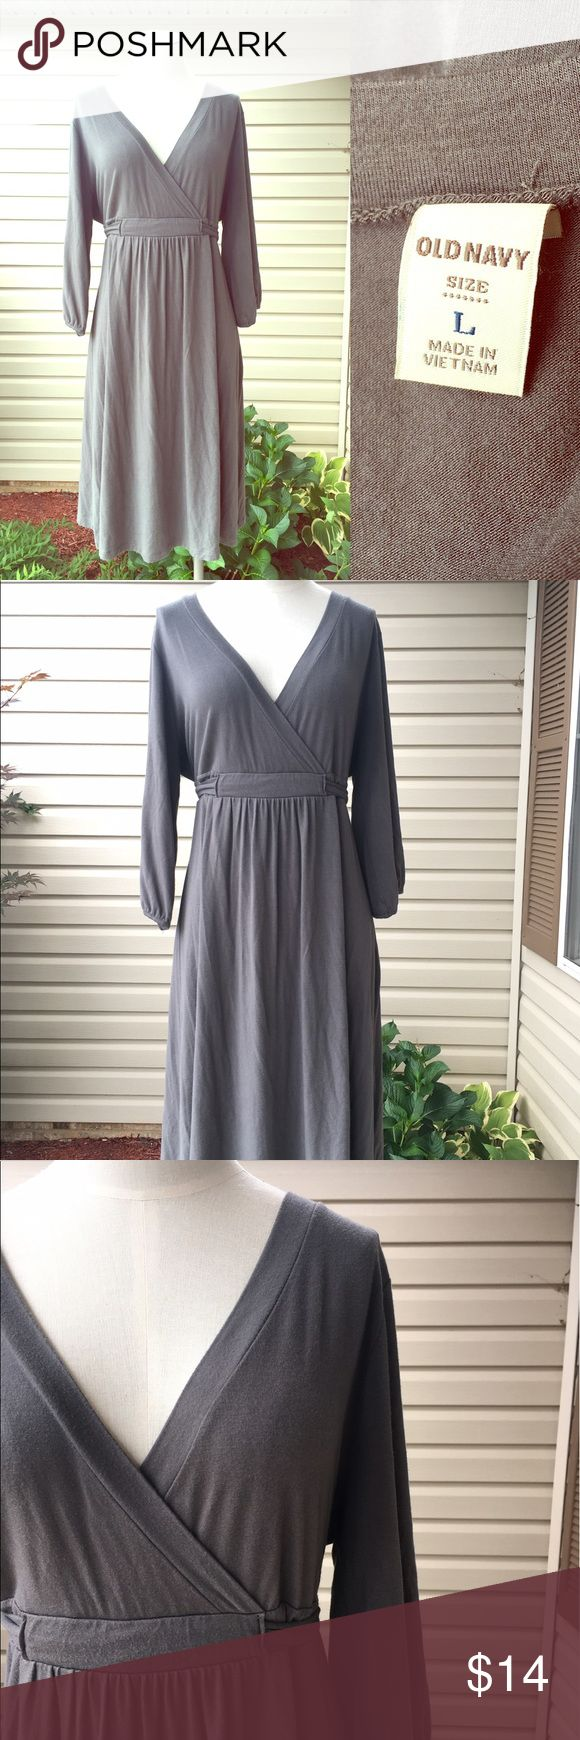 ⭐️Old Navy Gray V Neck Long Sleeve Dress Size L⭐️ ⭐️Old Navy Gray V Neck Long Sleeve Dress Size L⭐️ Excellent Condition! Ties in the back. Perfect for summer or fall wear. Next day shipping. All sales are final. Old Navy Dresses Midi